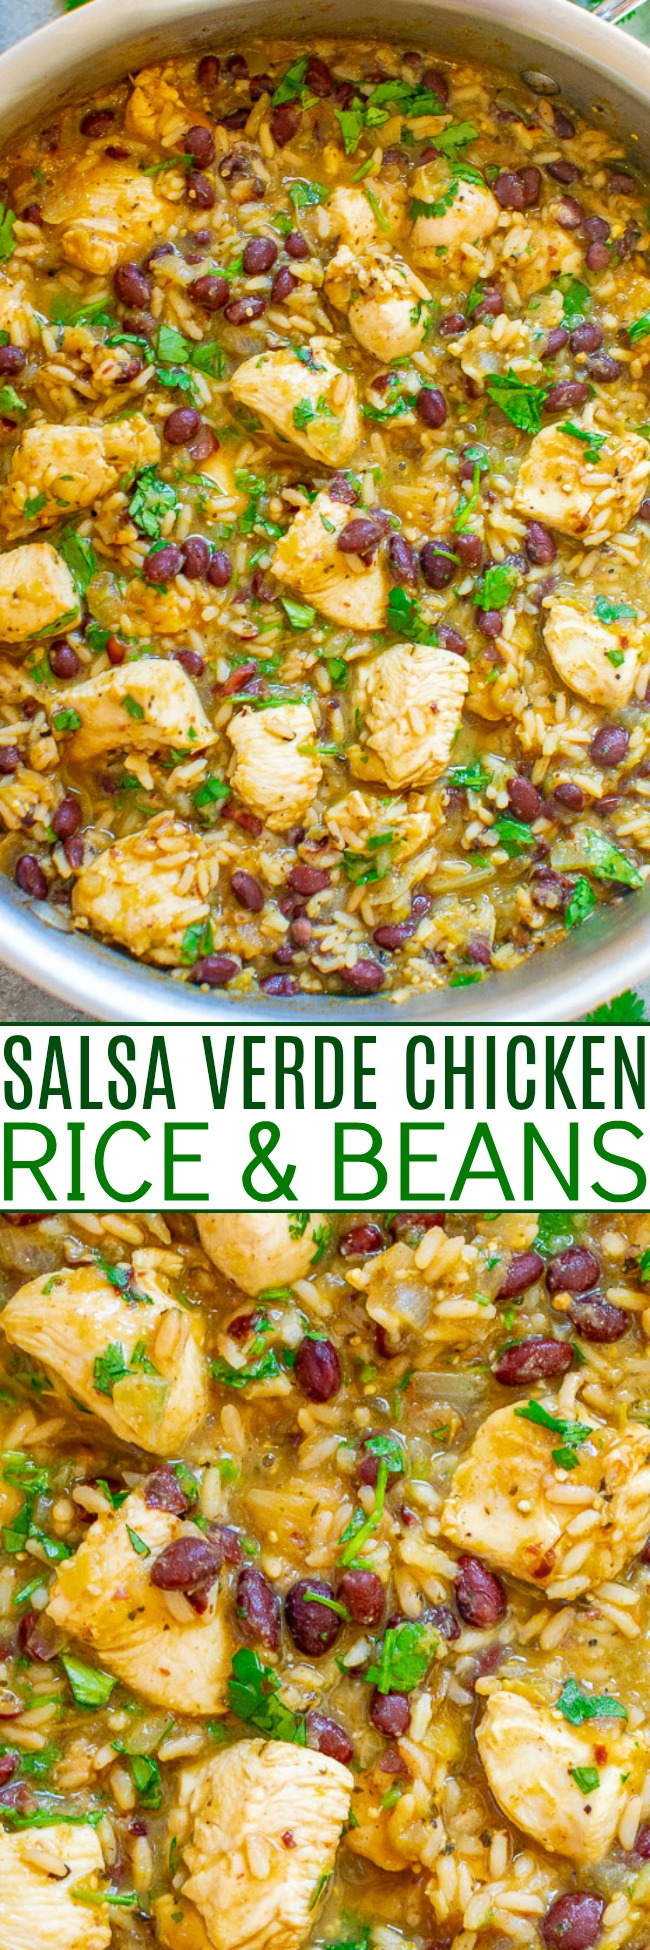 15-Minute Salsa Verde Chicken, Rice, and Beans - Fast, EASY, one skillet recipe!! Between the salsa verde, lime juice, and cilantro mixed with juicy chicken, rice, and beans, you'll be hooked! Perfect for busy weeknights and meal prepping!!